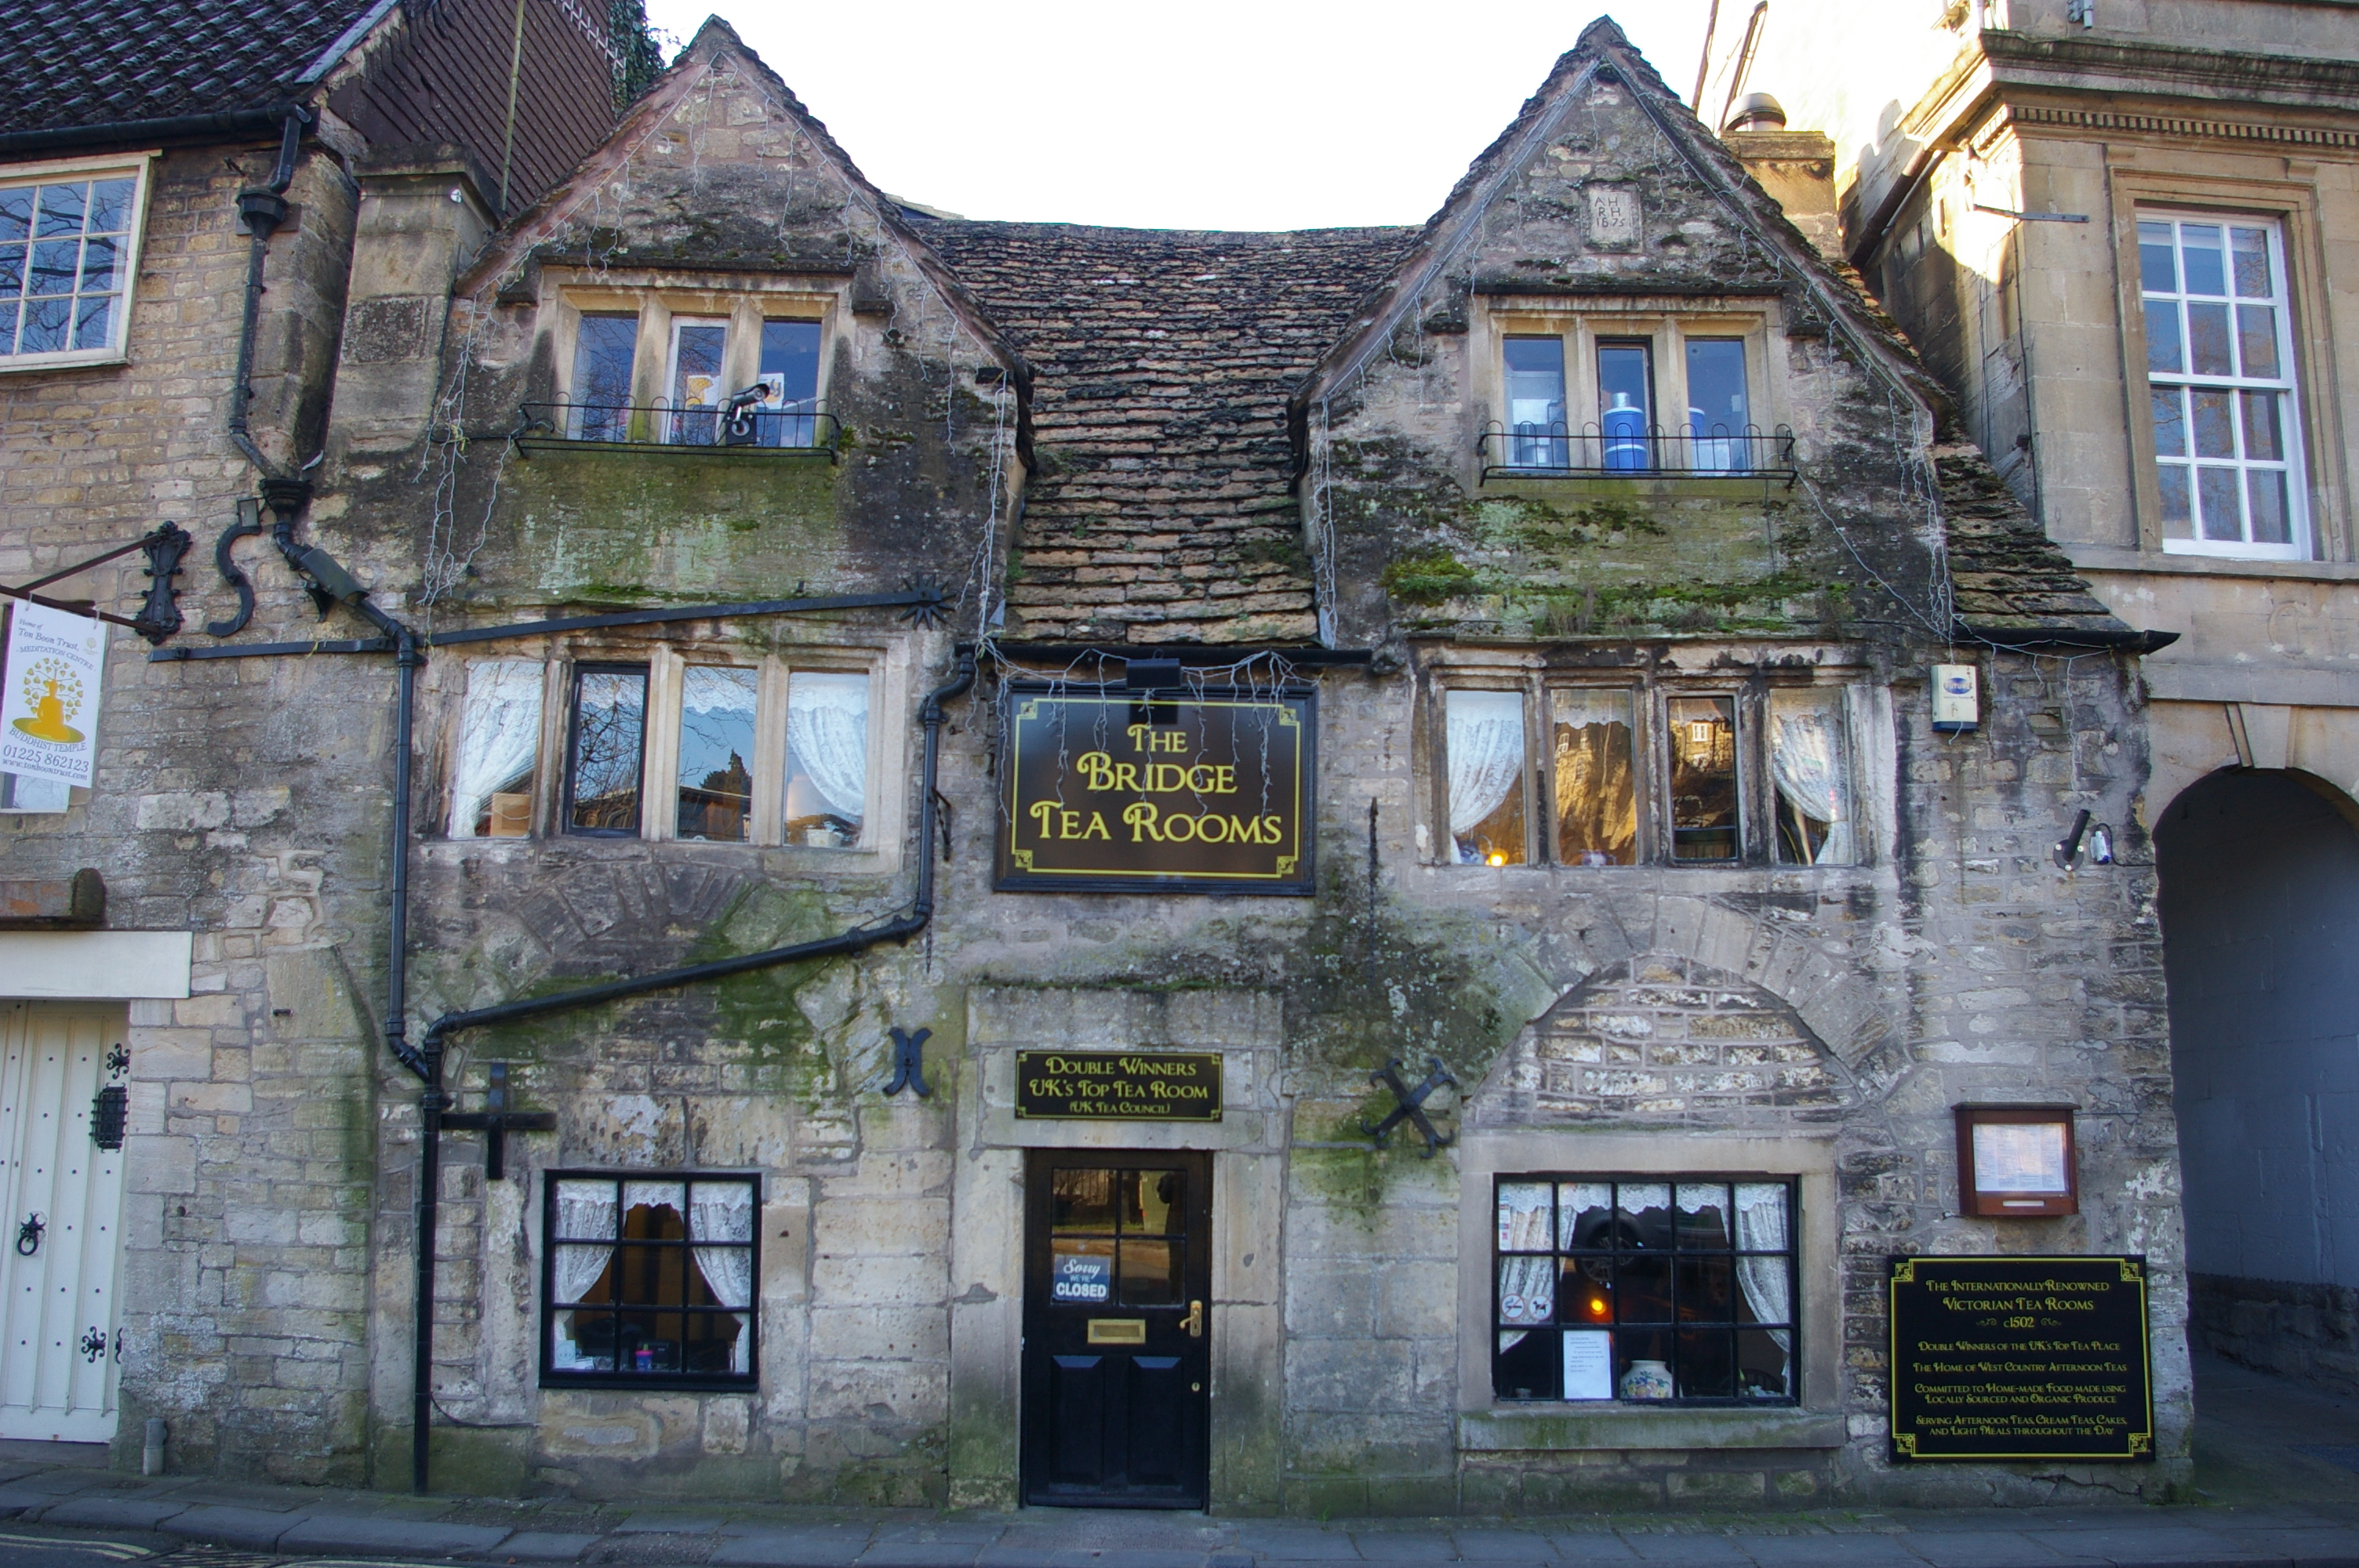 Exterior of the Bridge Tea Rooms in Bradford on Avon